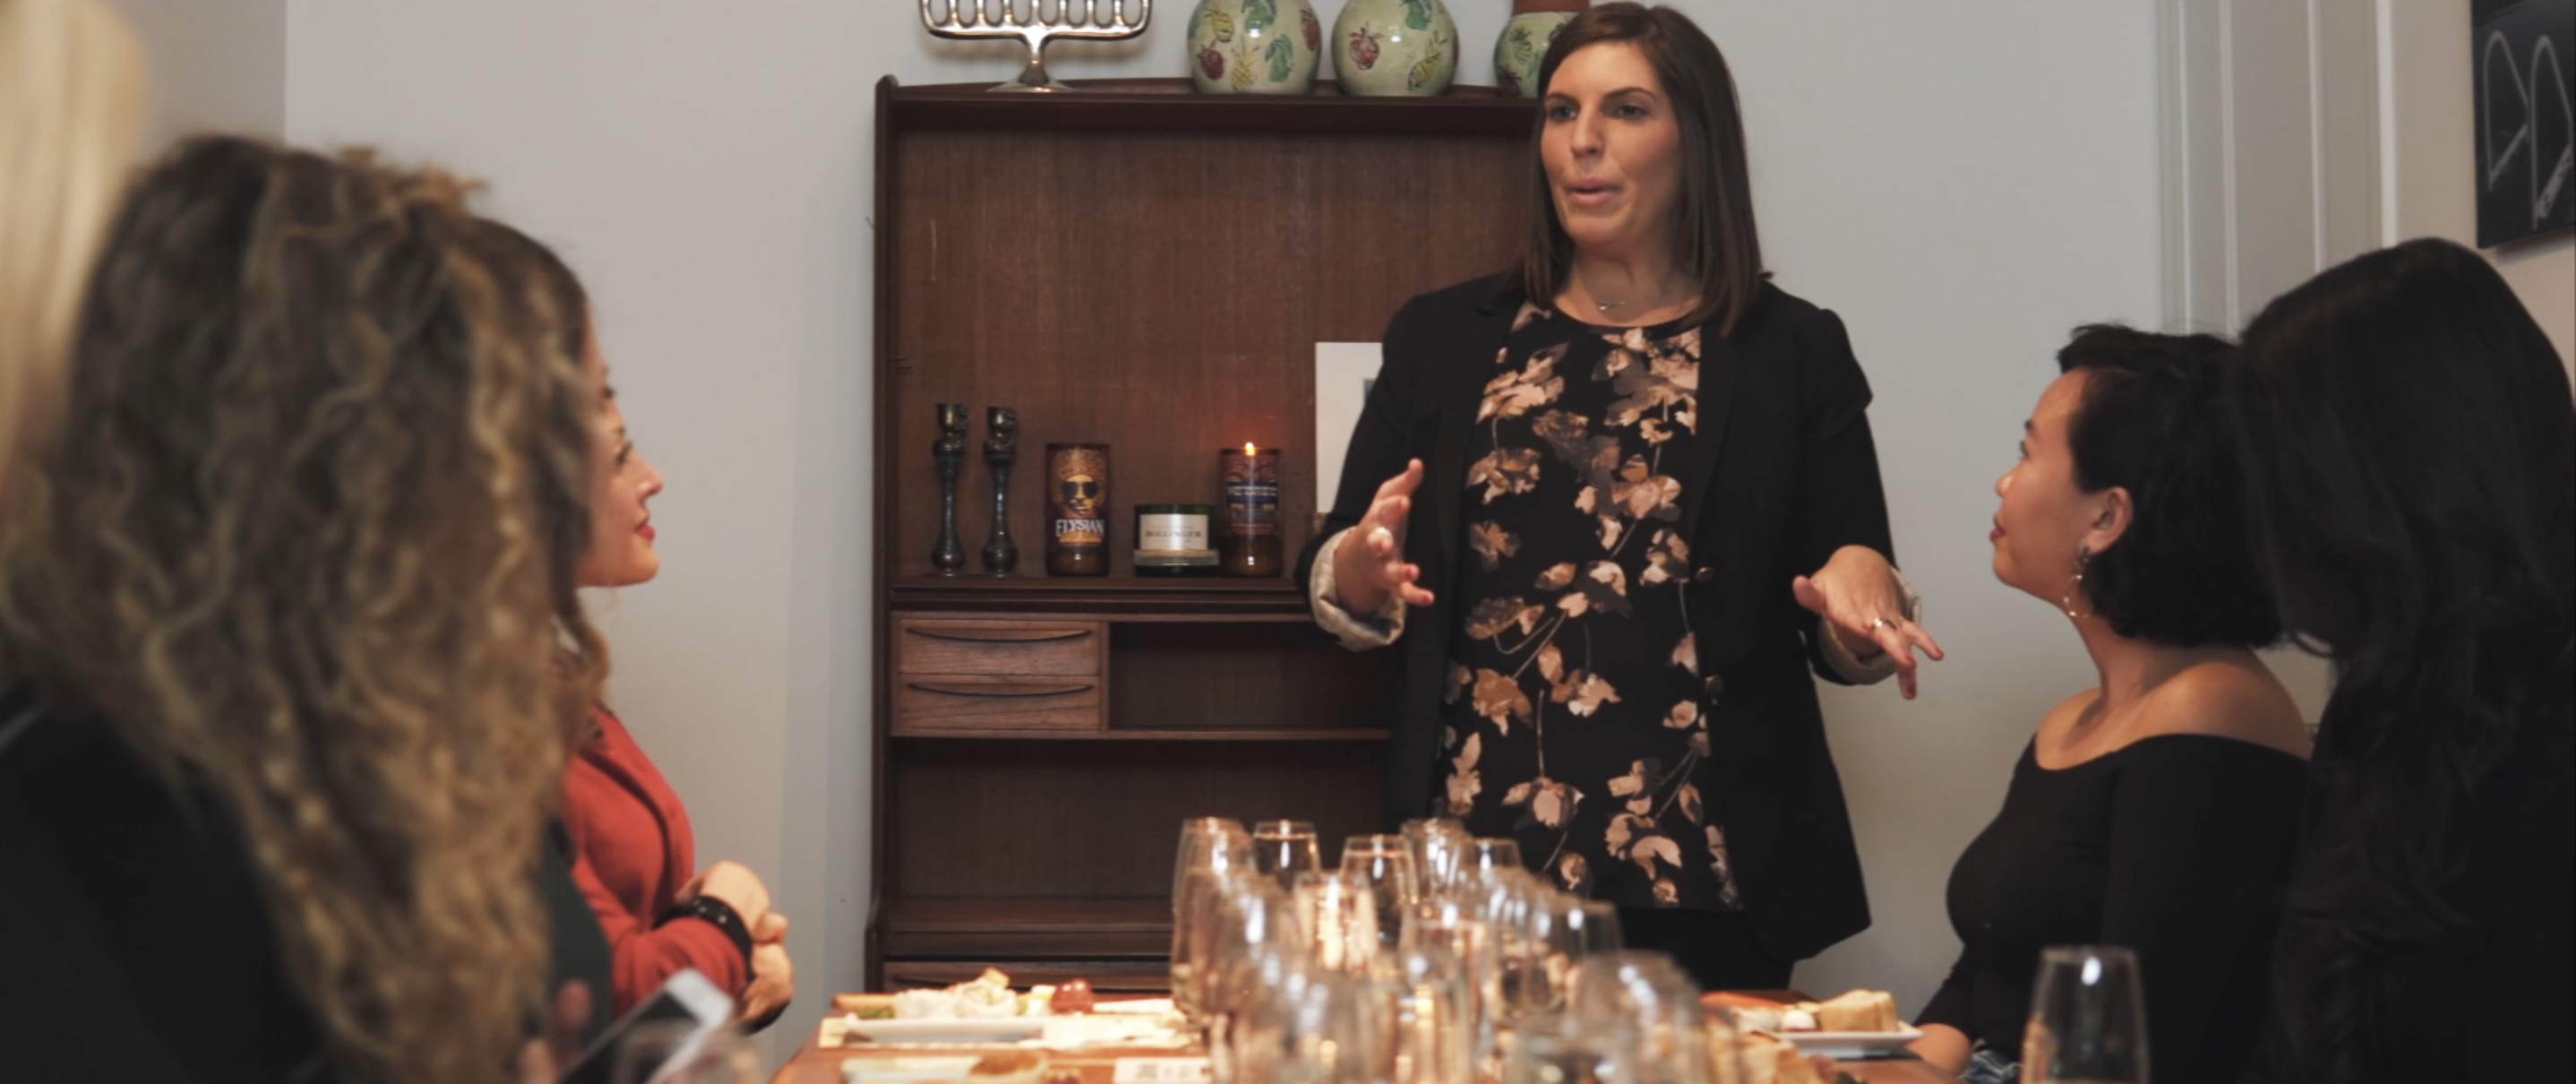 wine expert imparting knowledge to group